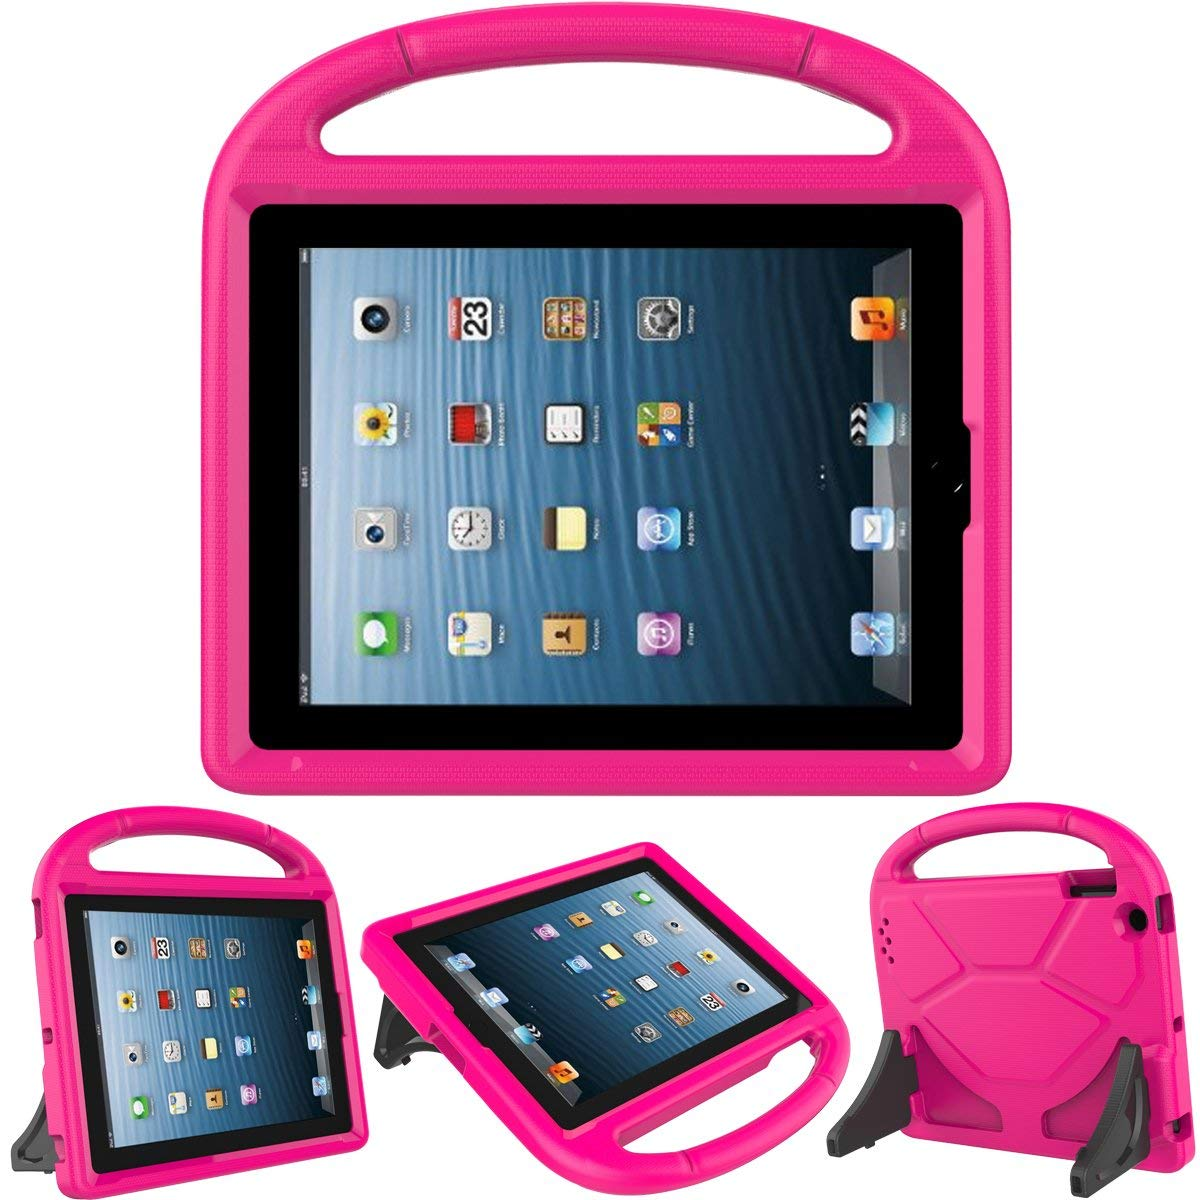 Kids Case for iPad 2 3 4 9.7-inch Tablet, Allytech Shock Proof Convertible Handle Light Weight Durable Super Protective Stand Cover for iPad 4, iPad 3 & iPad 2 2nd 3rd 4th Generation Tablet - Rose